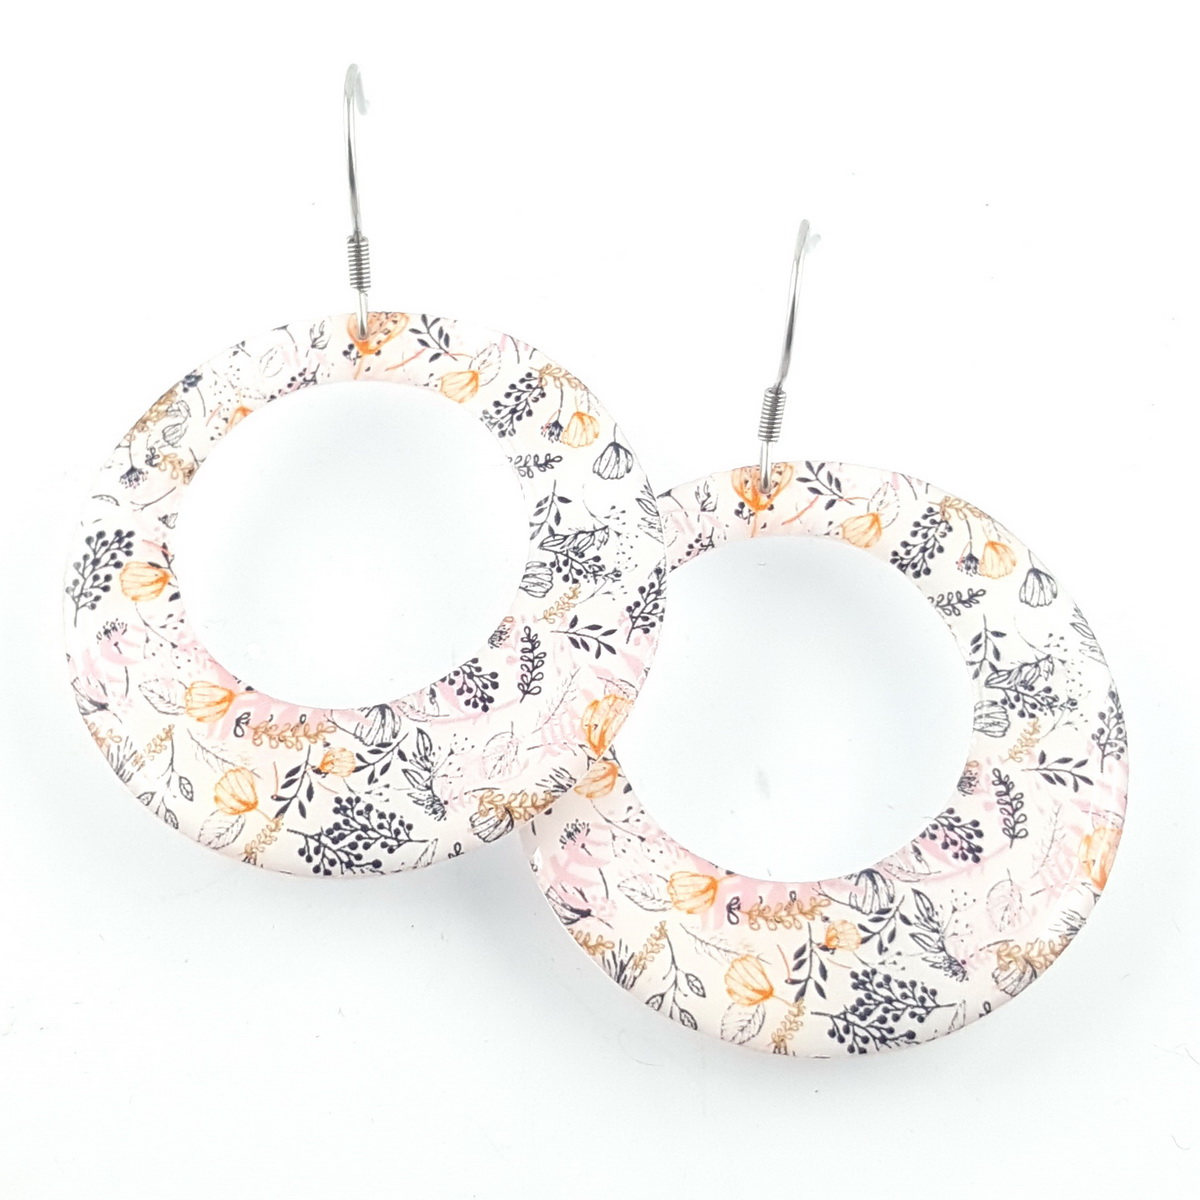 boucles d'oreilles motif liberty - résine made in France